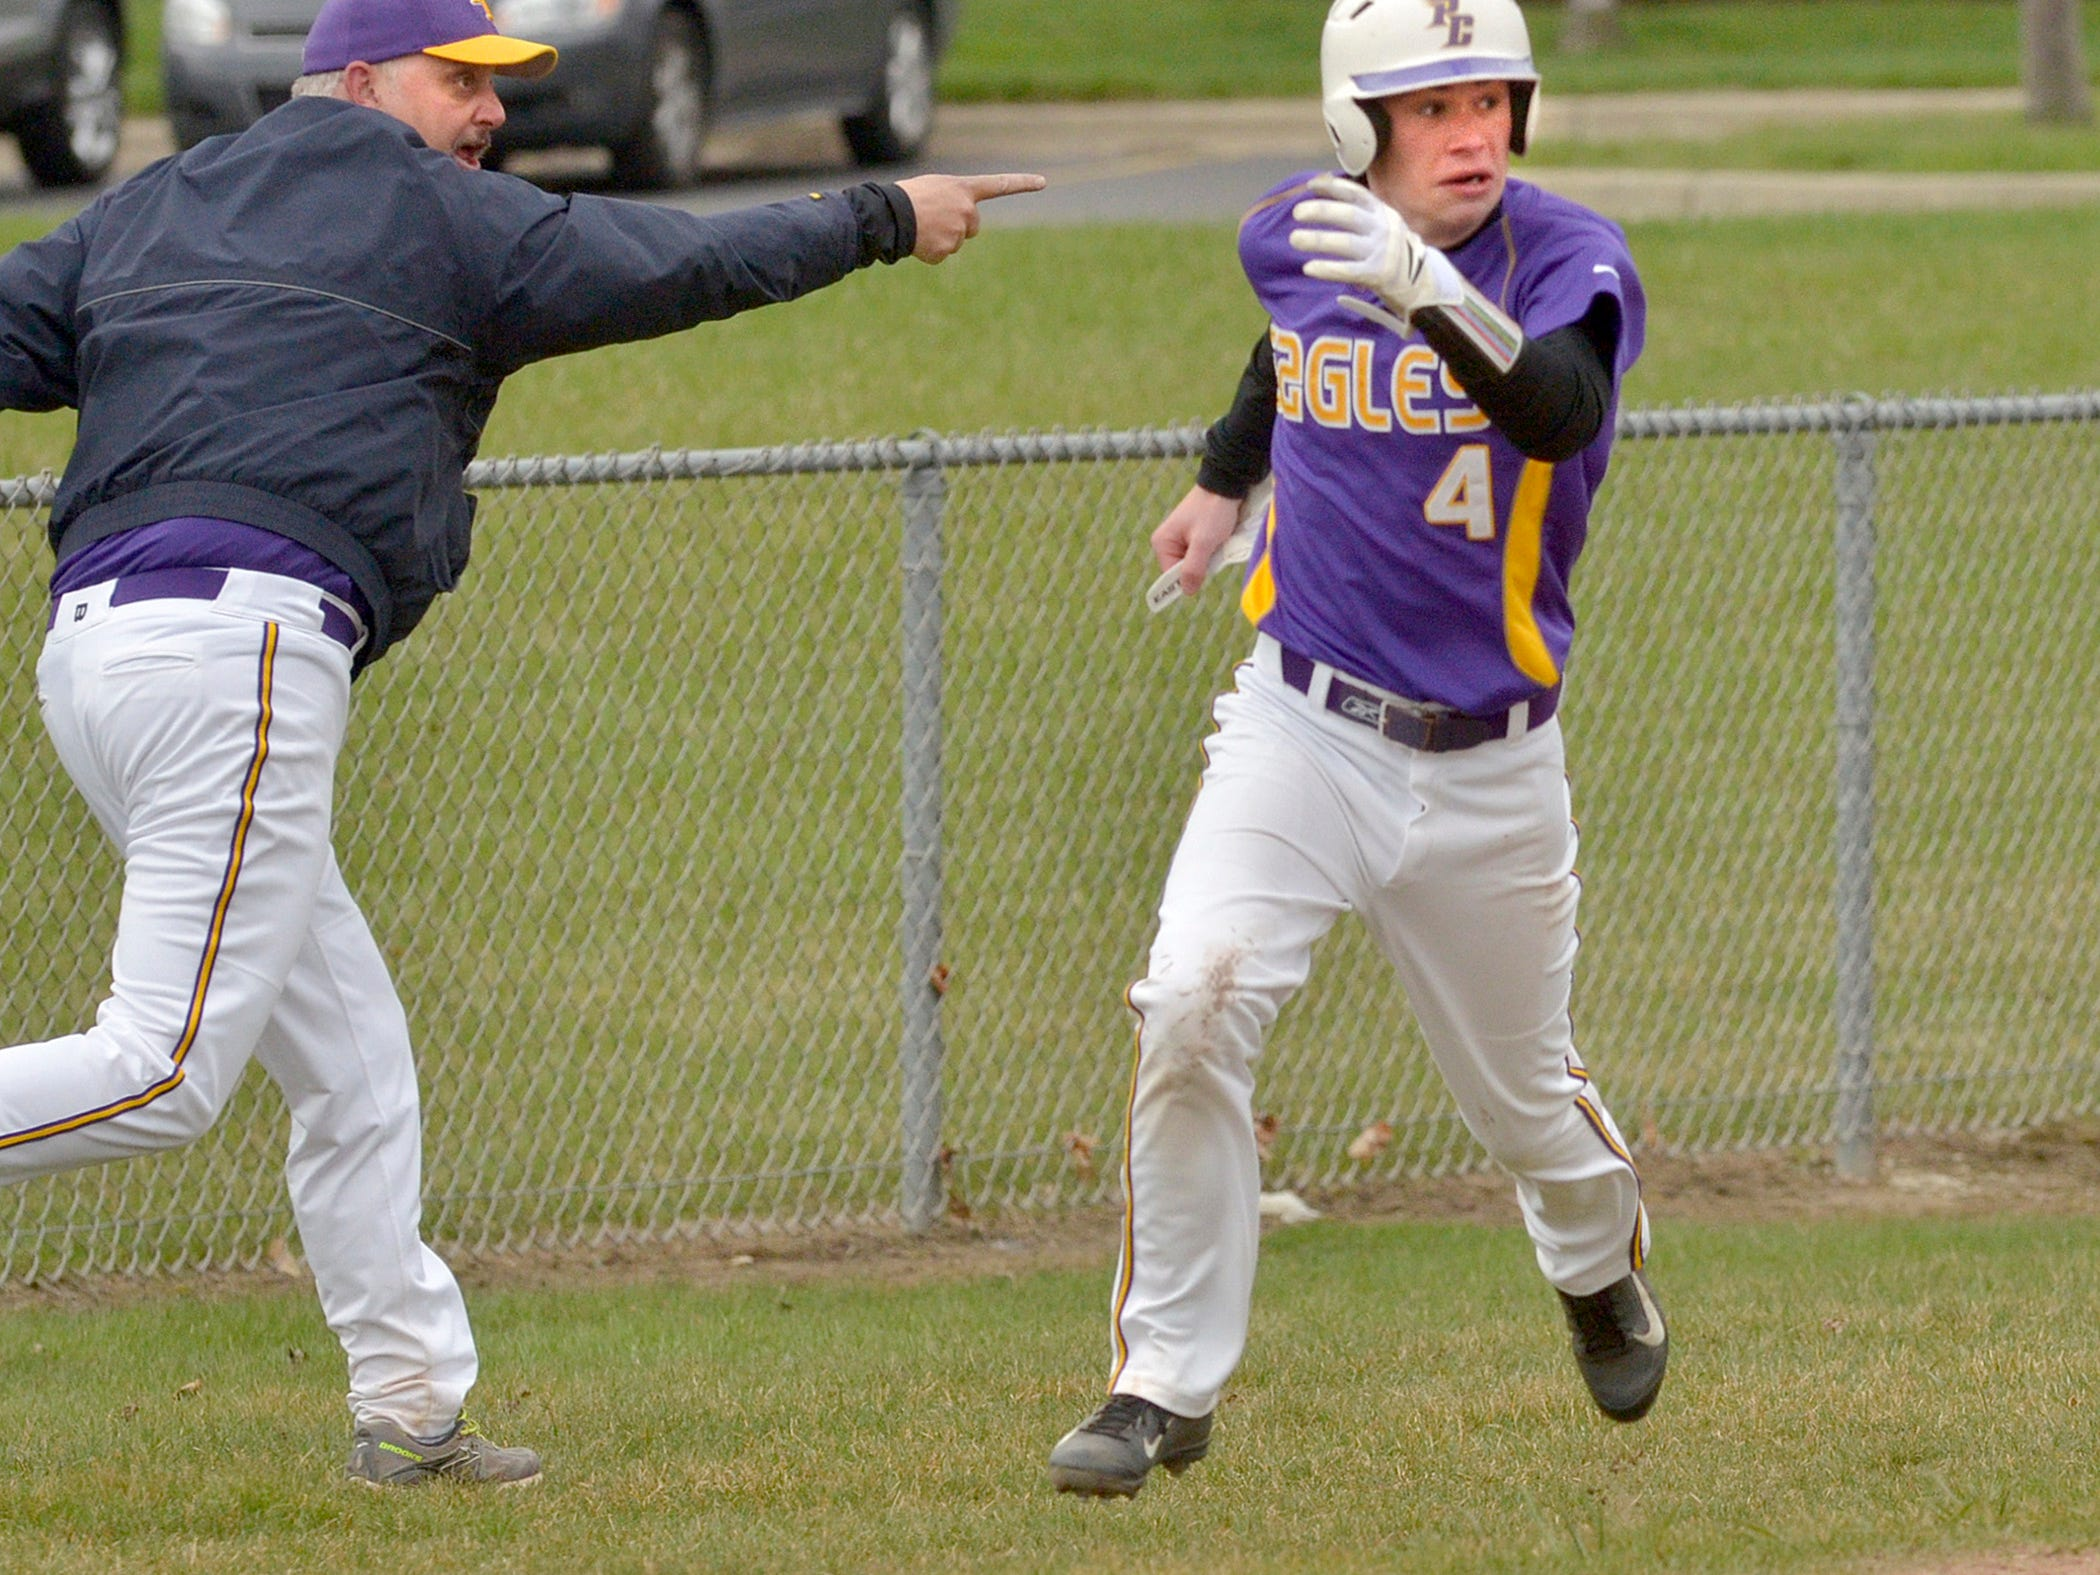 Plymouth Christian's Will Crecelius scores during a recent game. He and his Eagles teammates swept a doubleheader Thursday.